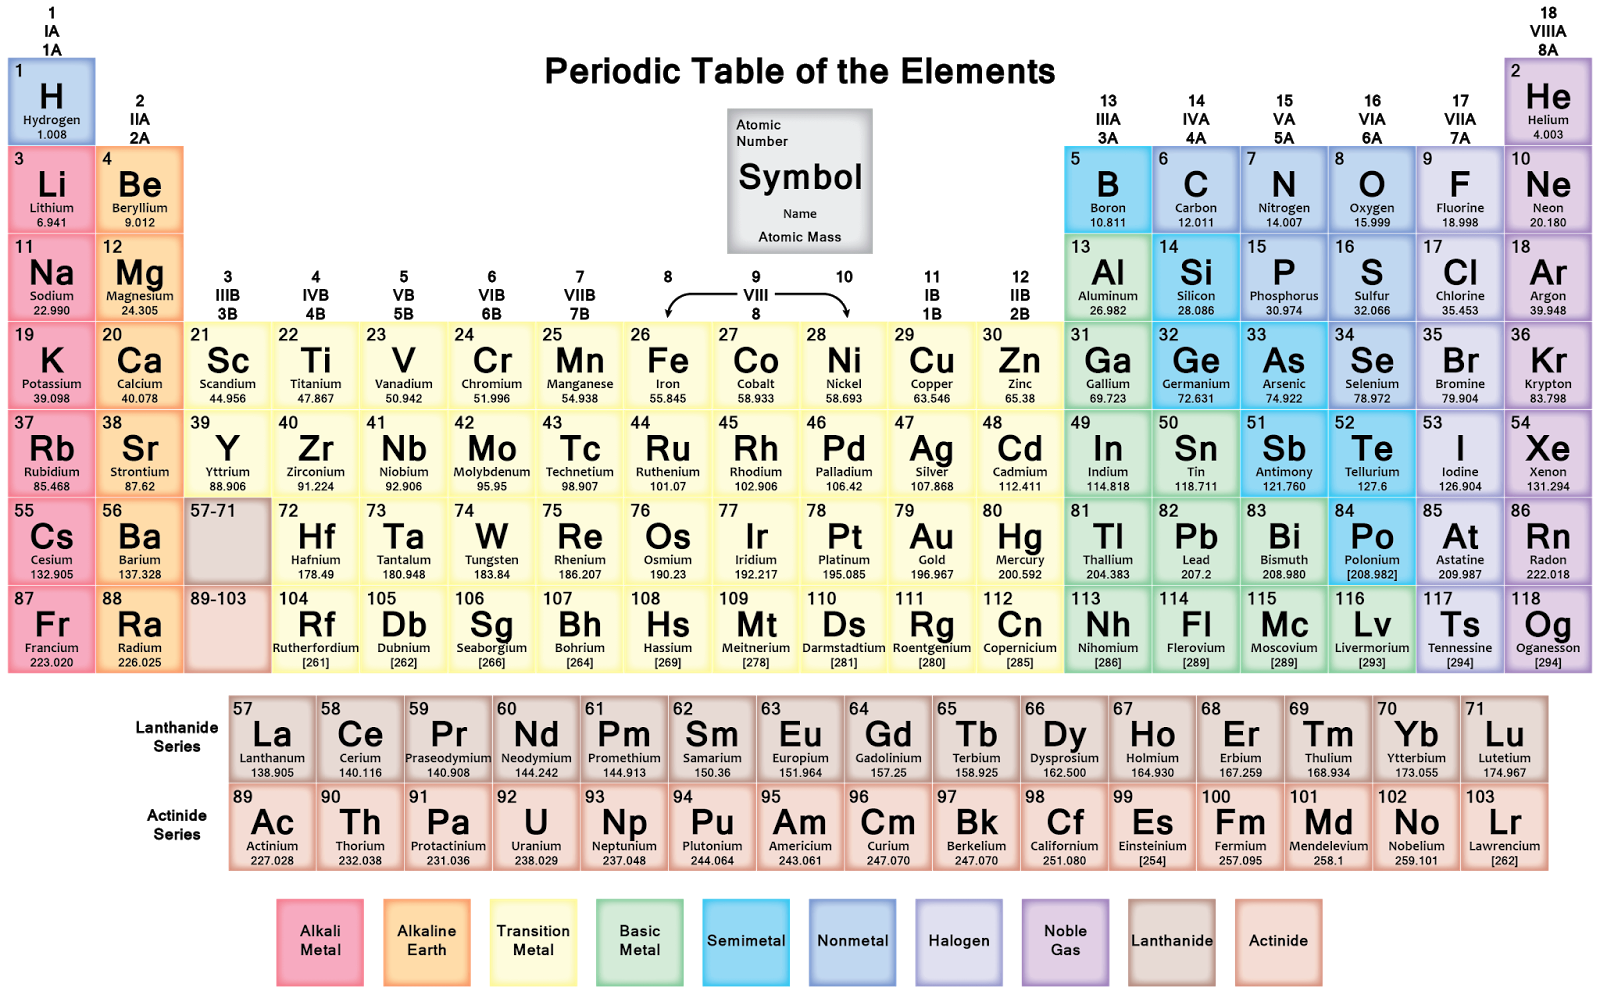 Blaines puzzle blog npr sunday puzzle oct 29 2017 metal name a well known nationality drop a letter and the remaining letters in order will name a metal one of the elements on the periodic table urtaz